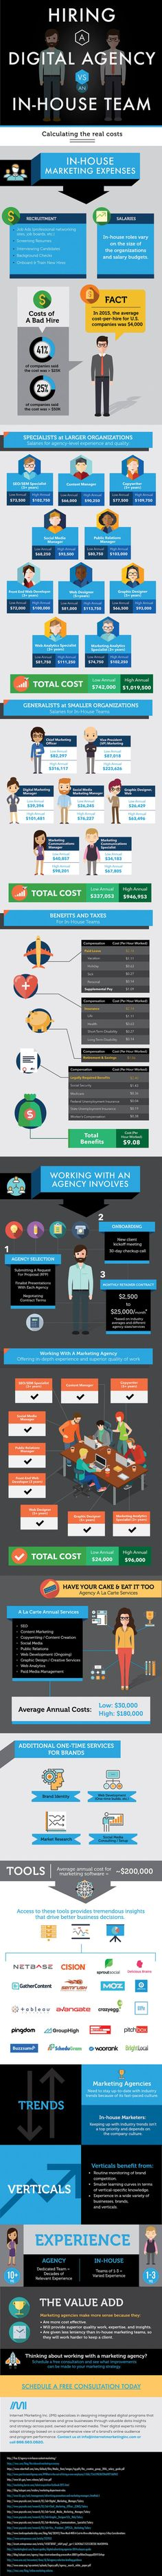 IMI Agency Vs. InHouse Infographic